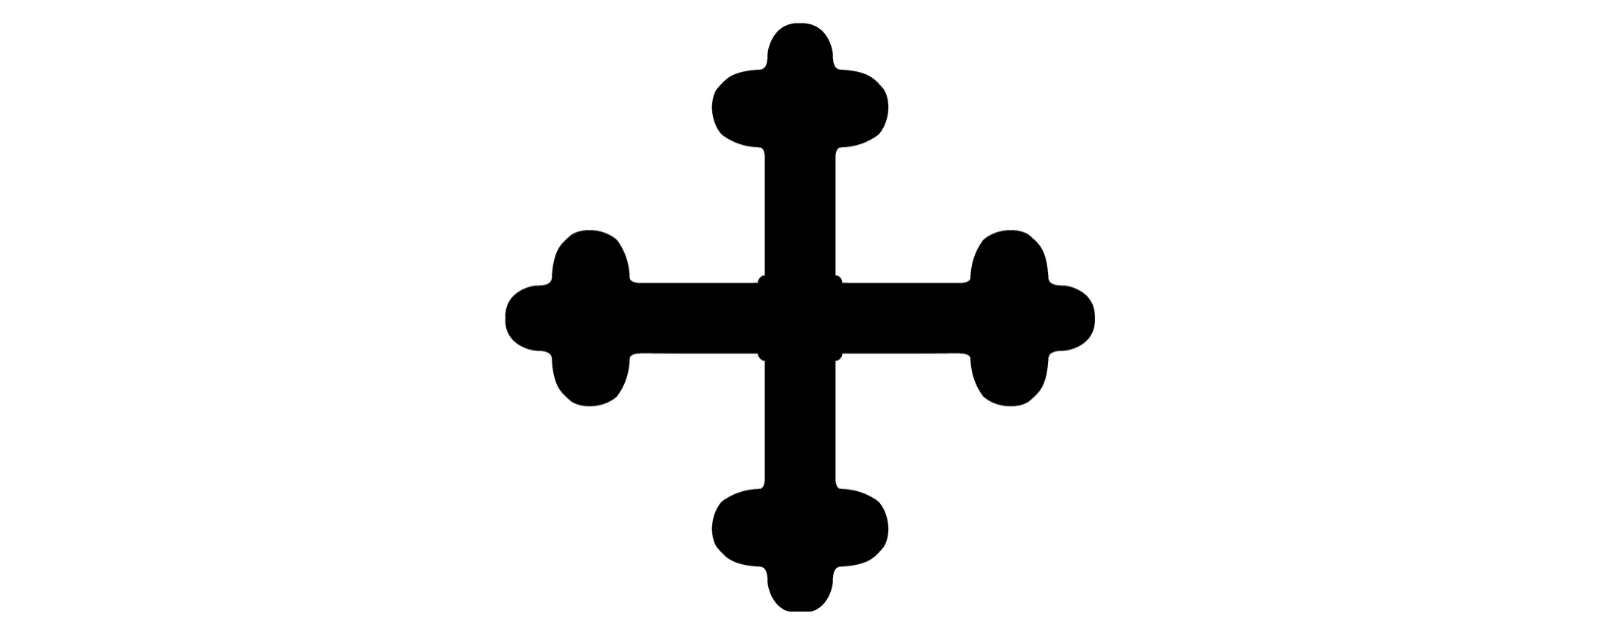 Cross of Lazarus